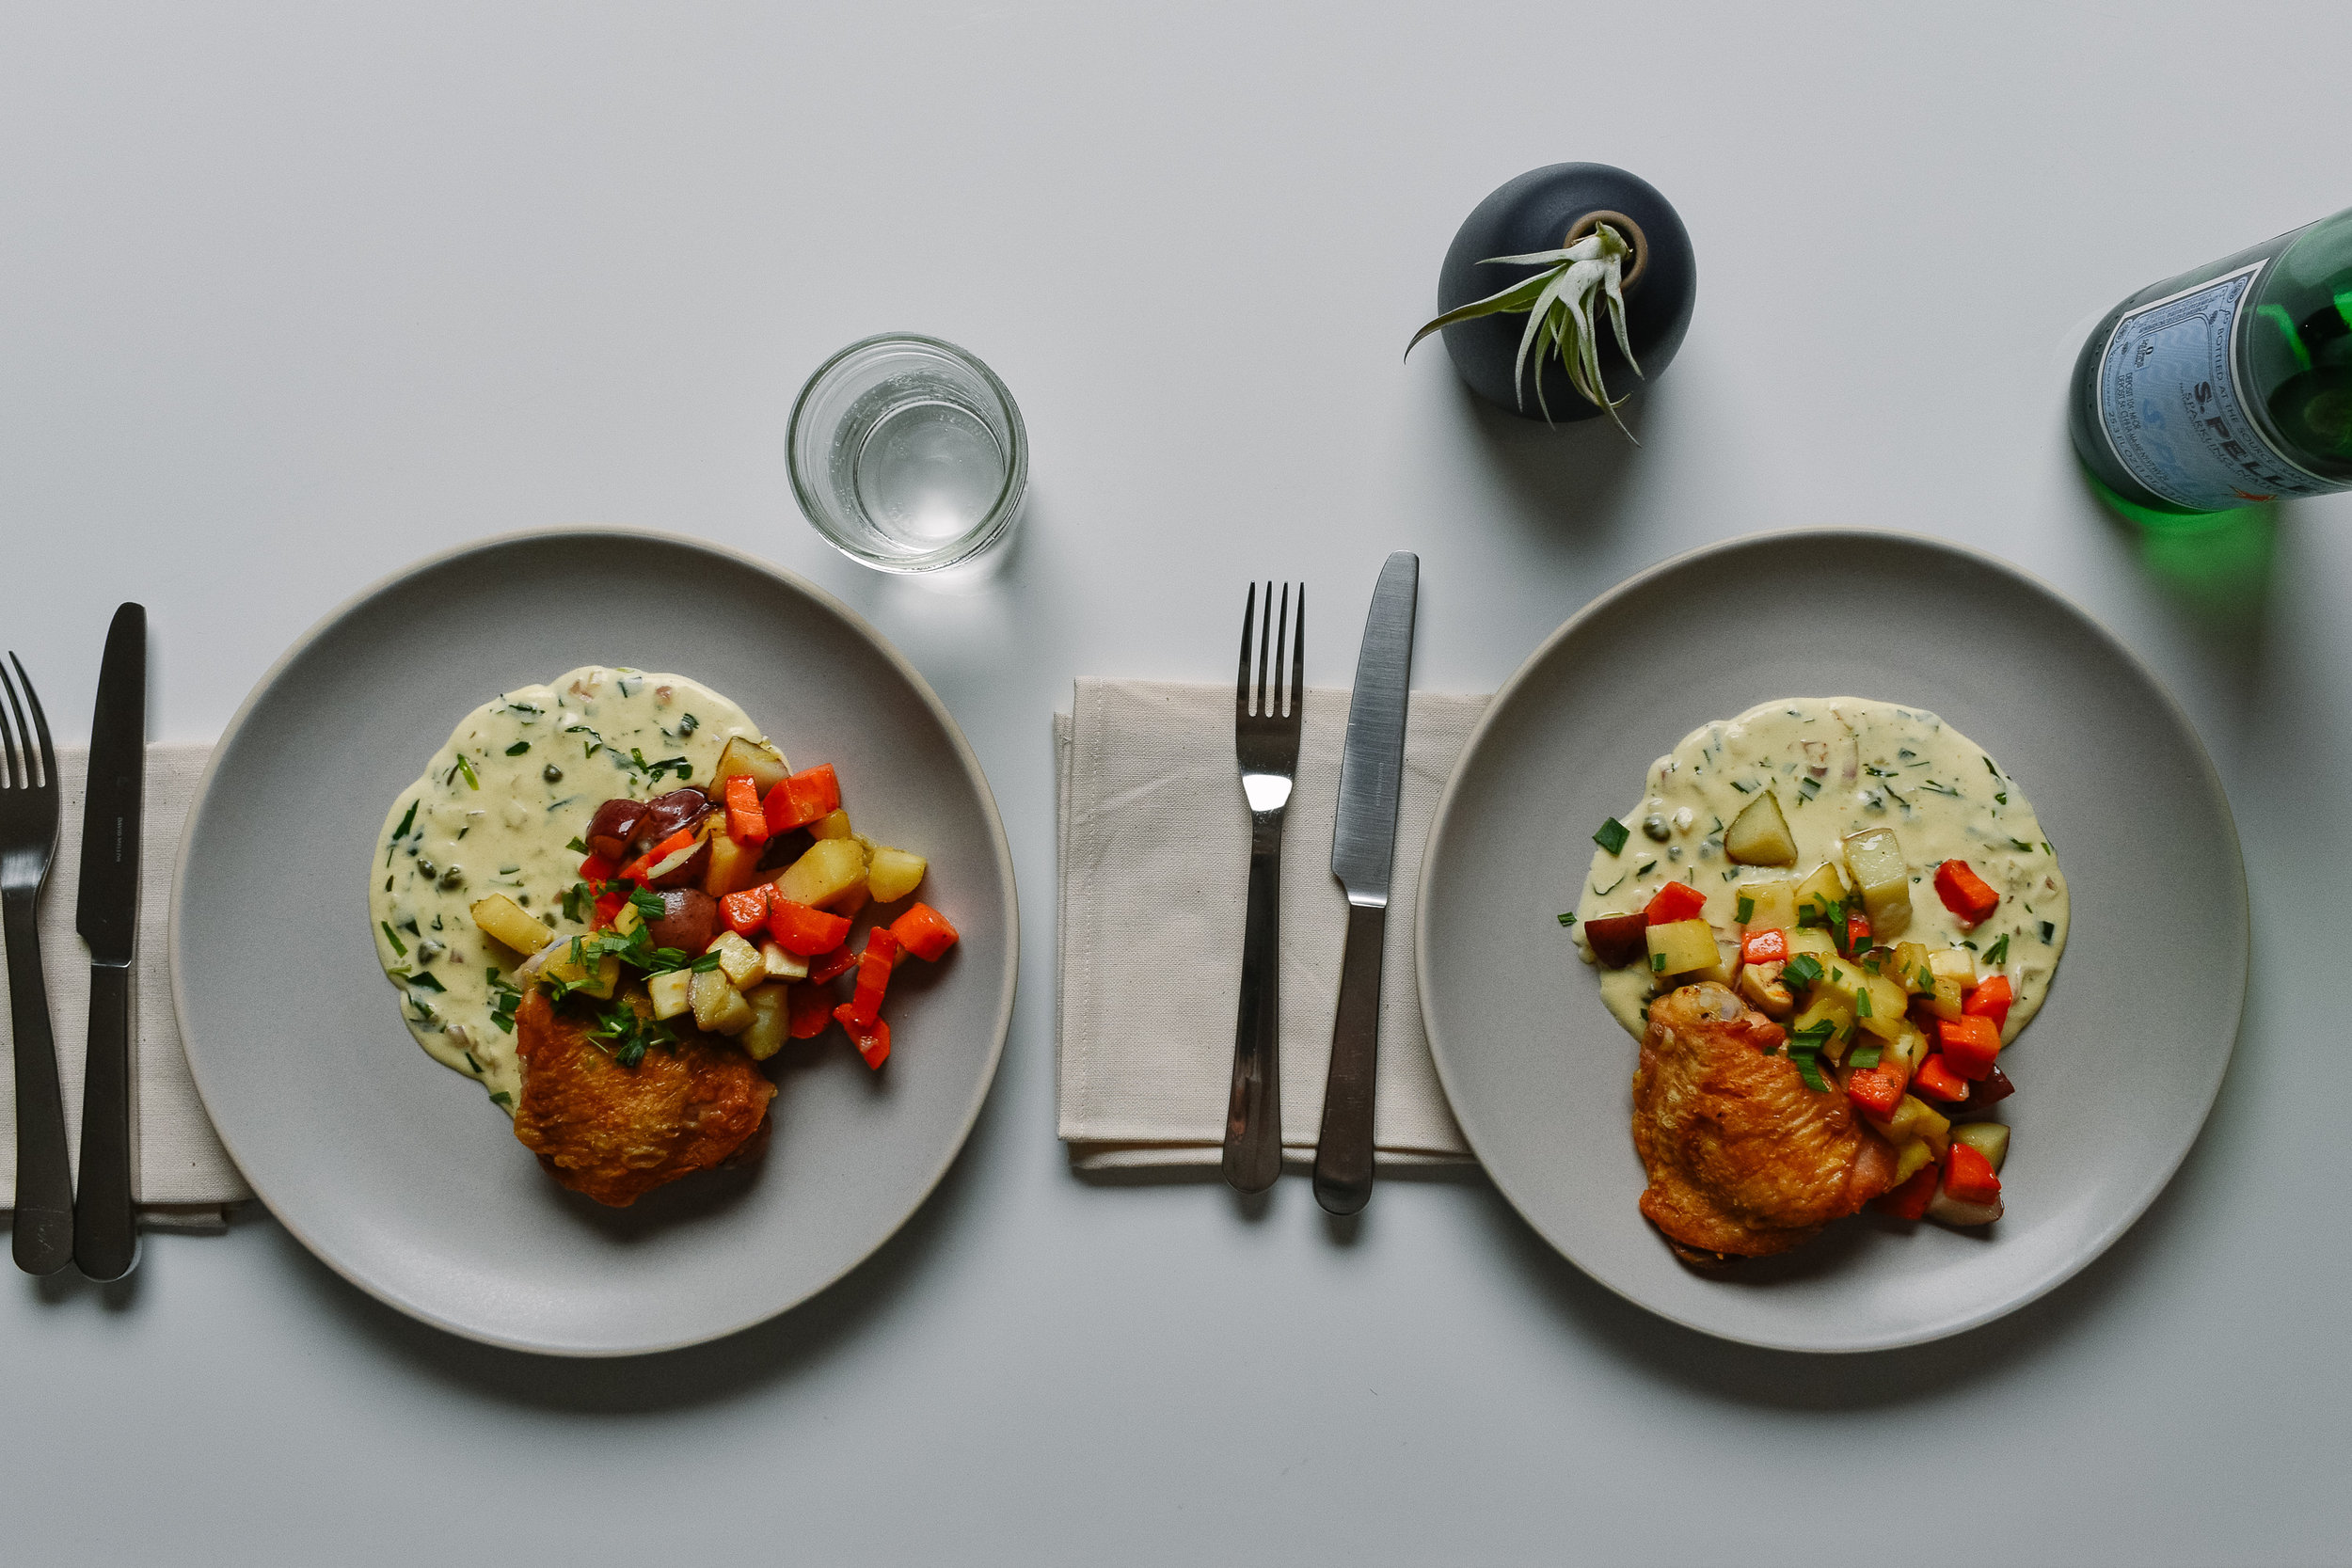 French roasted chicken and vegetables with tarragon cream sauce